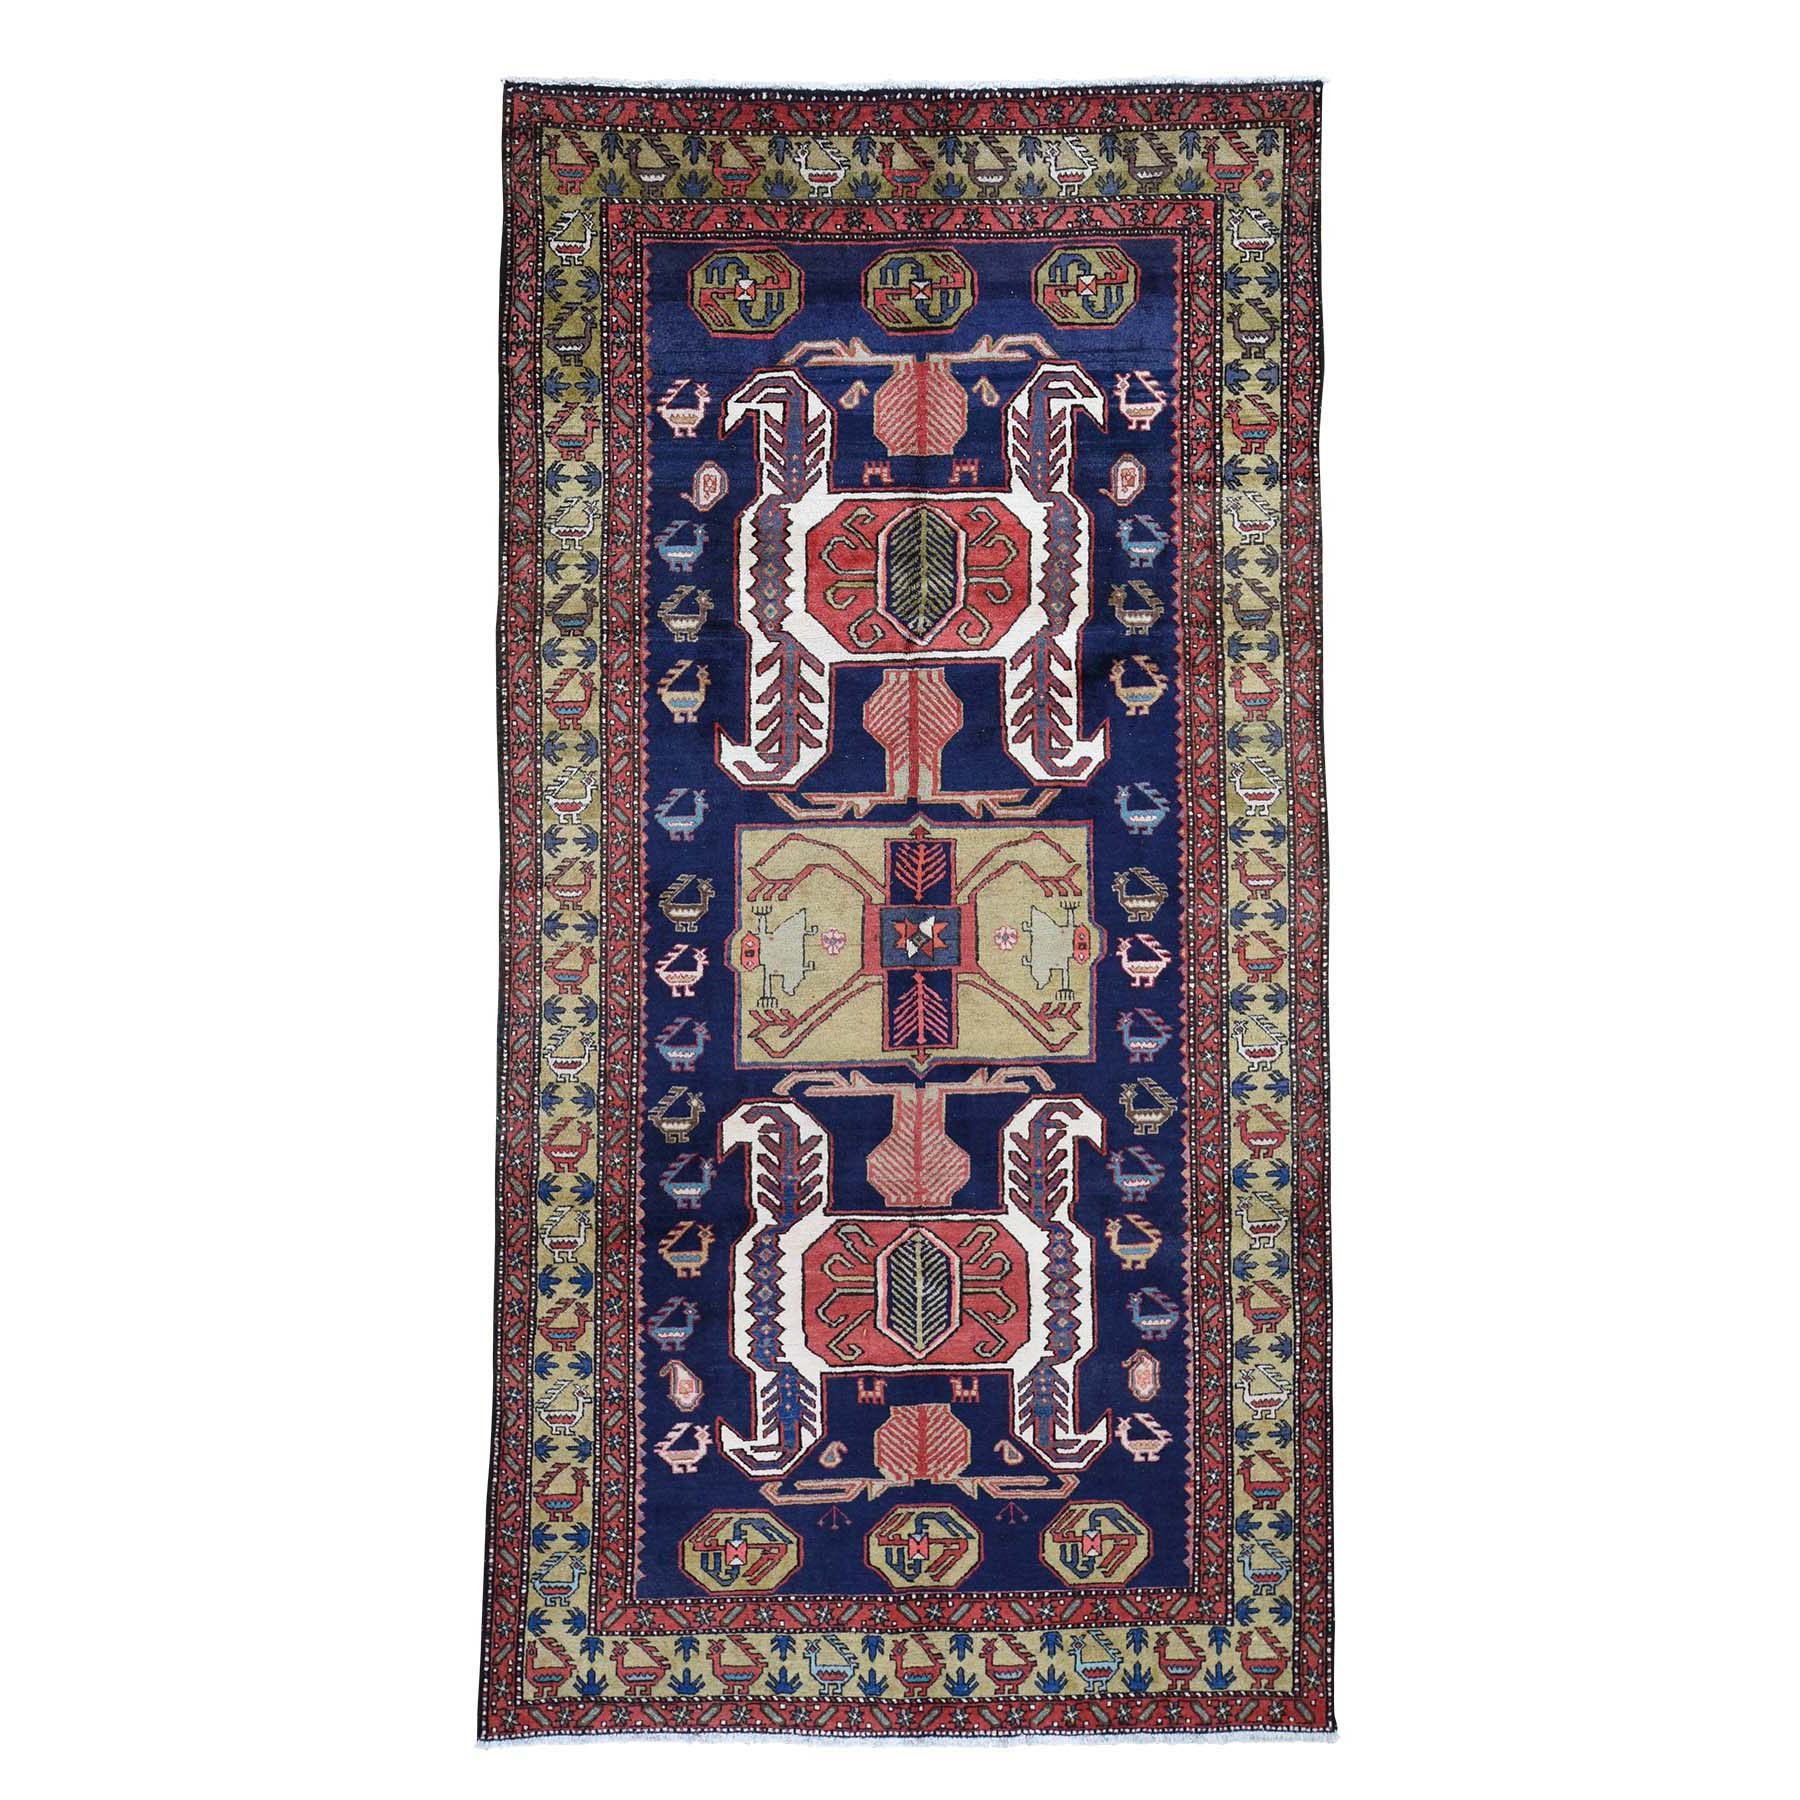 "5'7""X11' Vintage North West Persian With Ancient Peacocks Figure Motifs  Wide Gallery Runner Hand-Knotted Oriental Rug moad67e0"